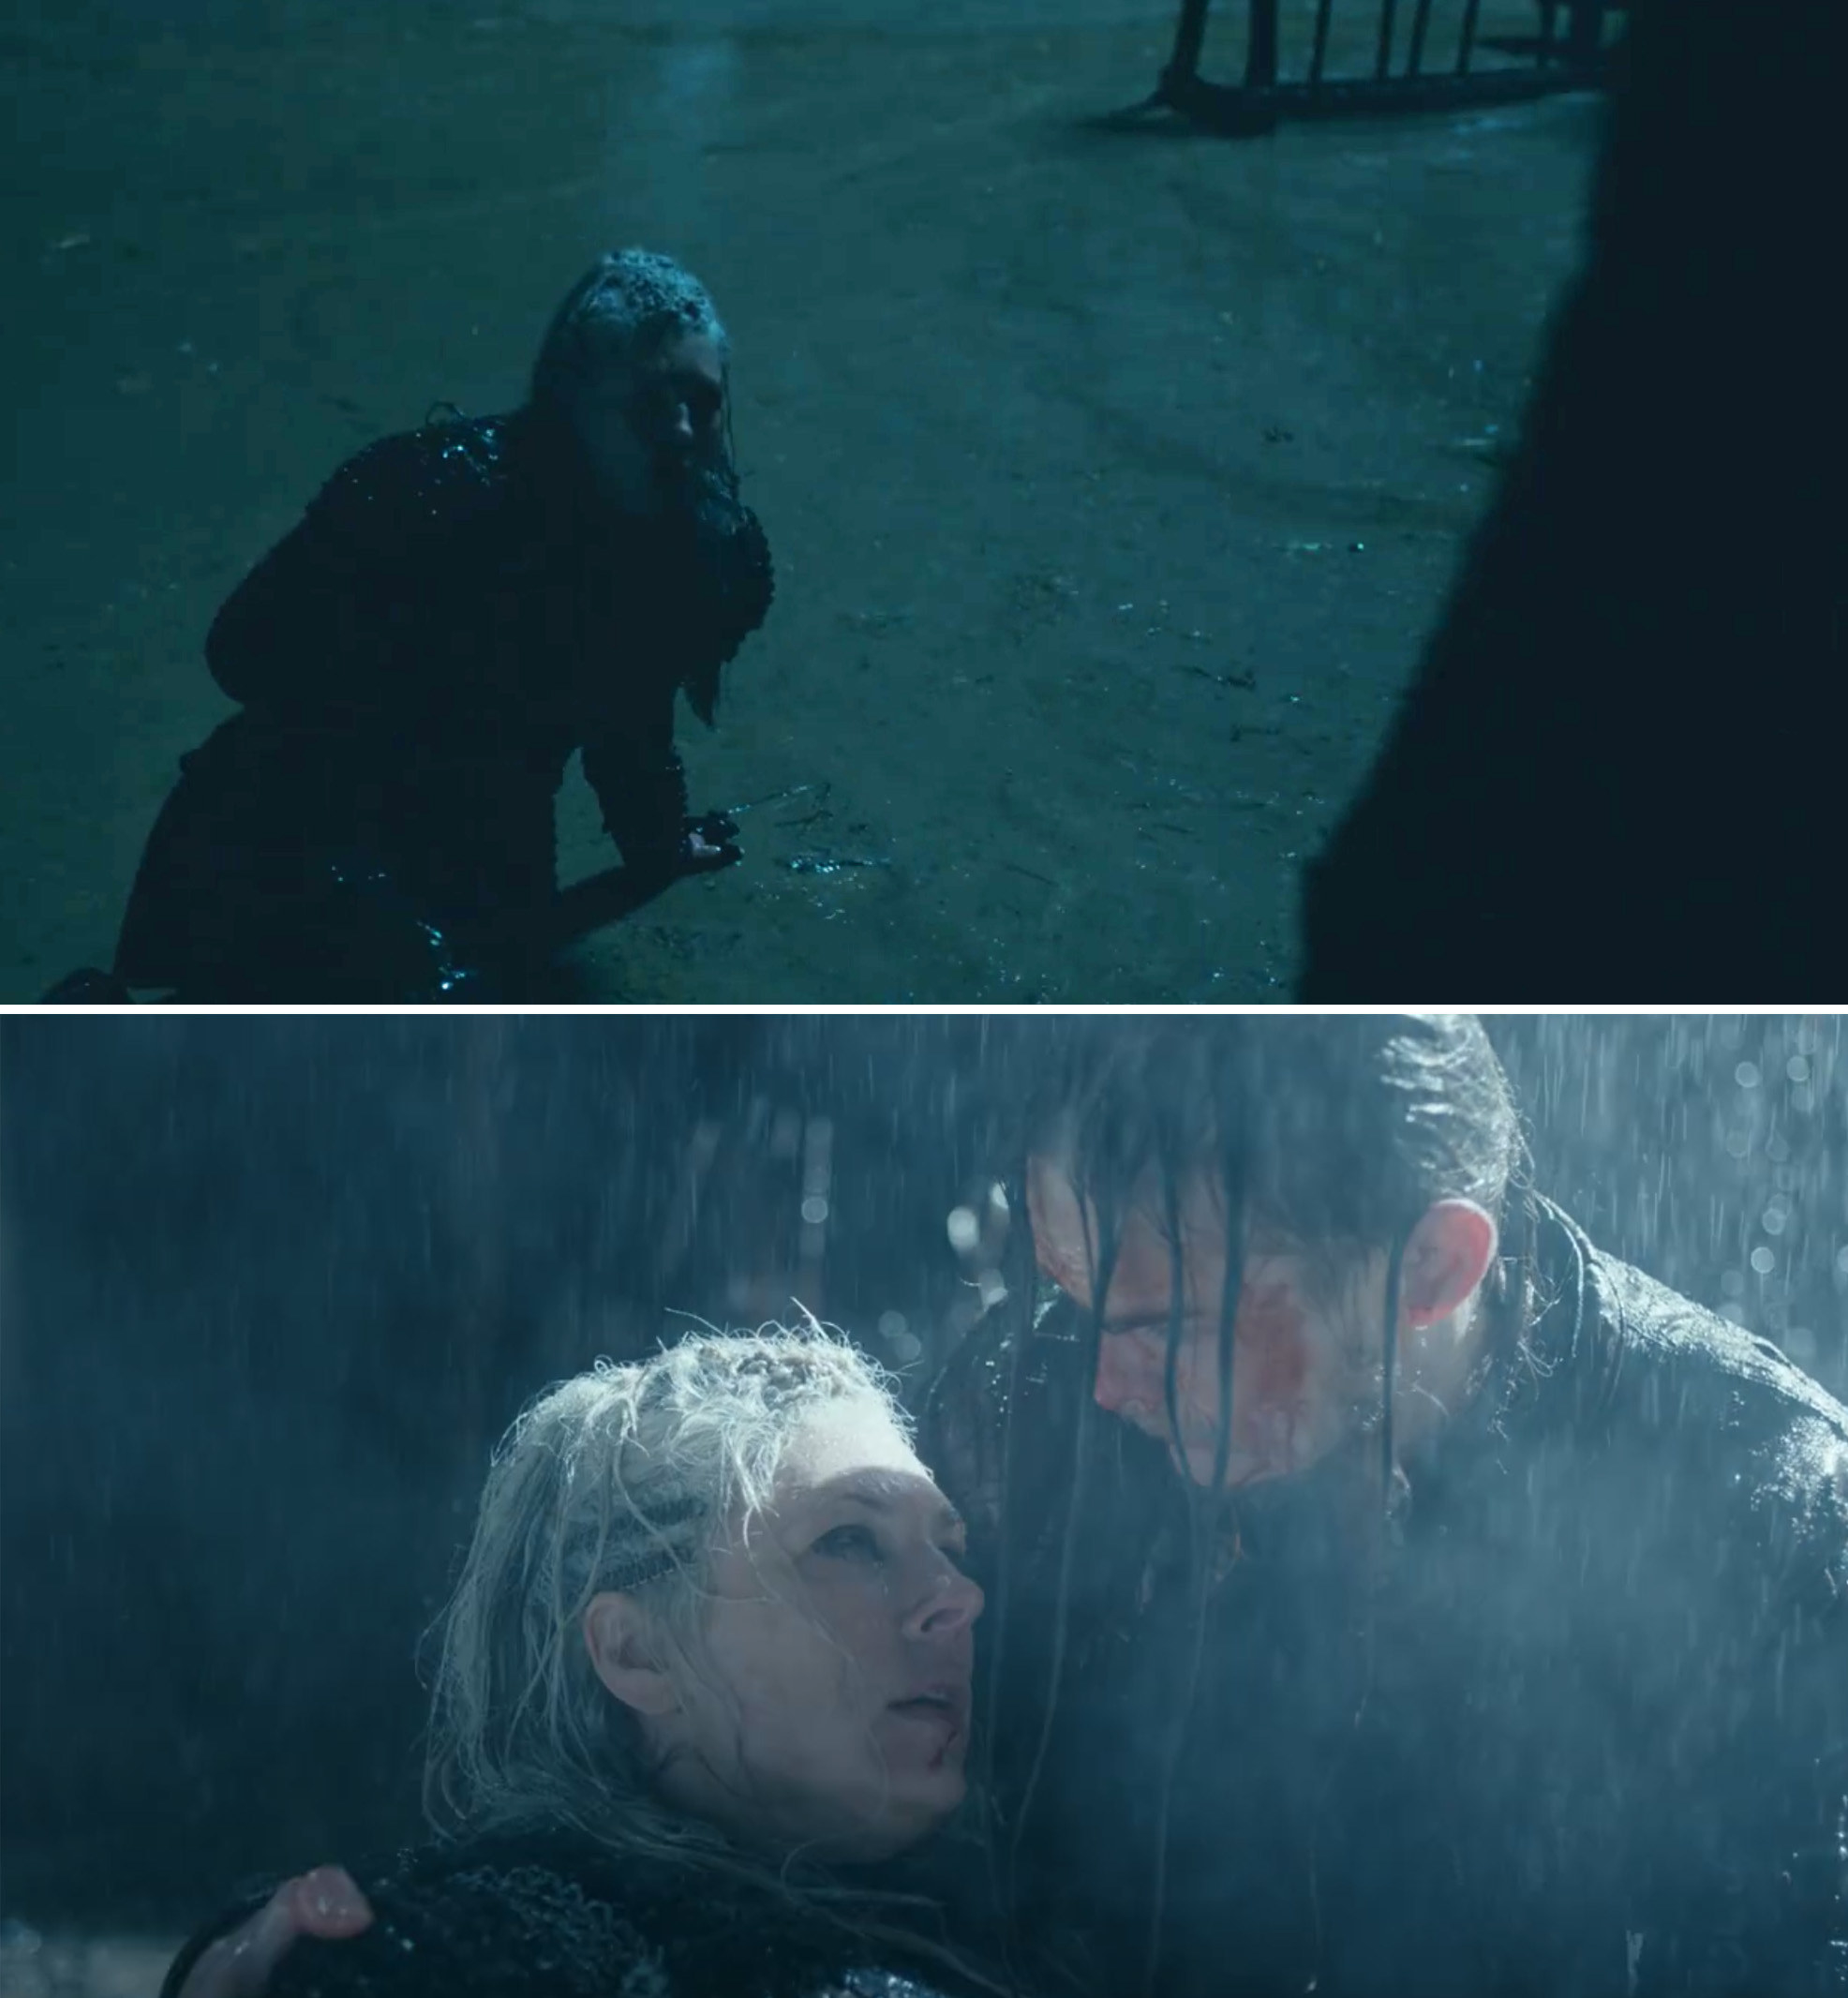 Legartha being stabbed and dying in Hvitserk's arms